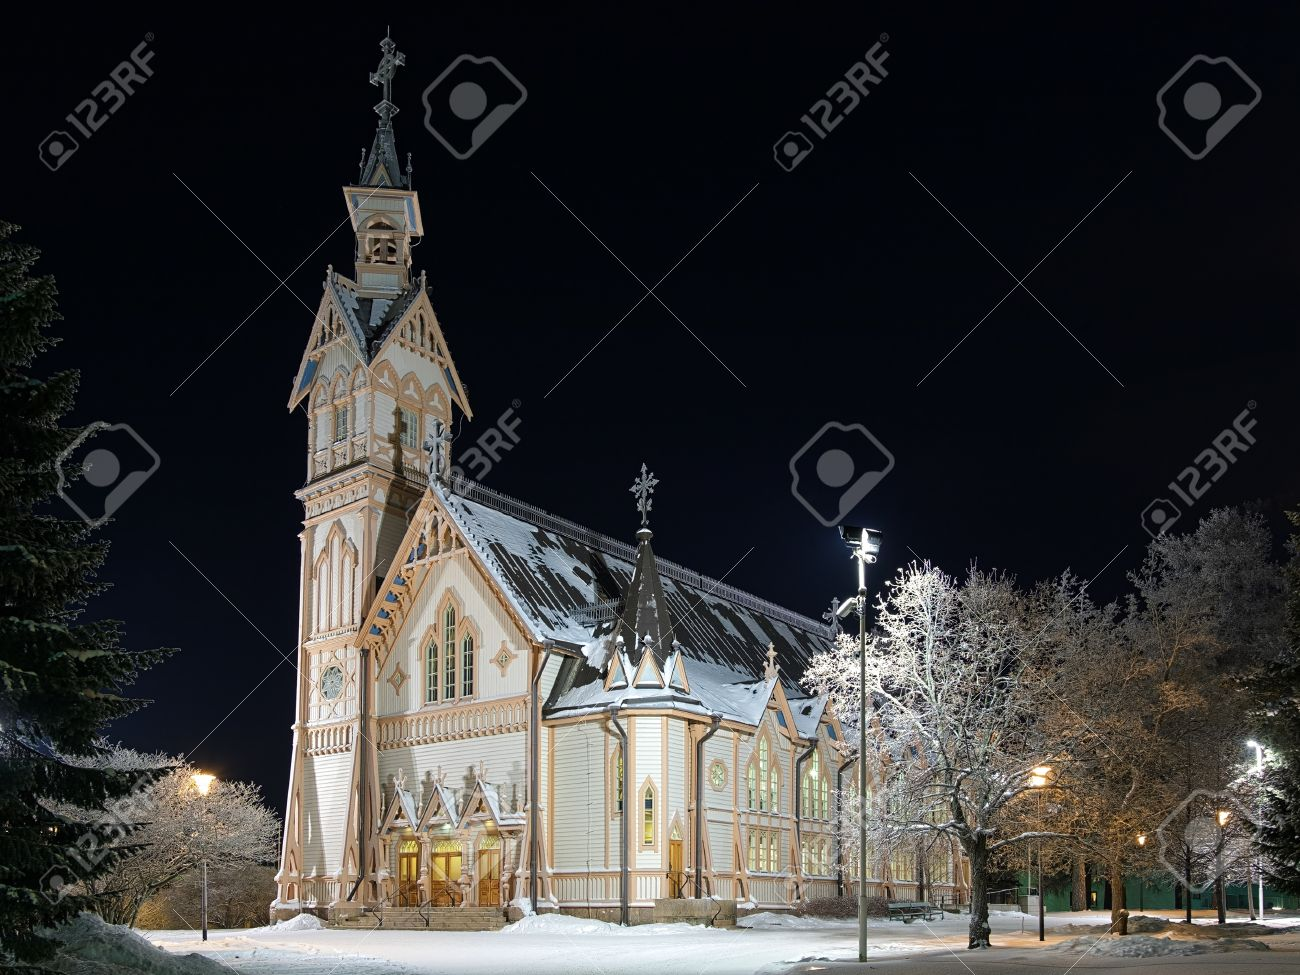 Kajaani Wooden Church In Gothic Revival Style Winter Night Finland Stock Photo